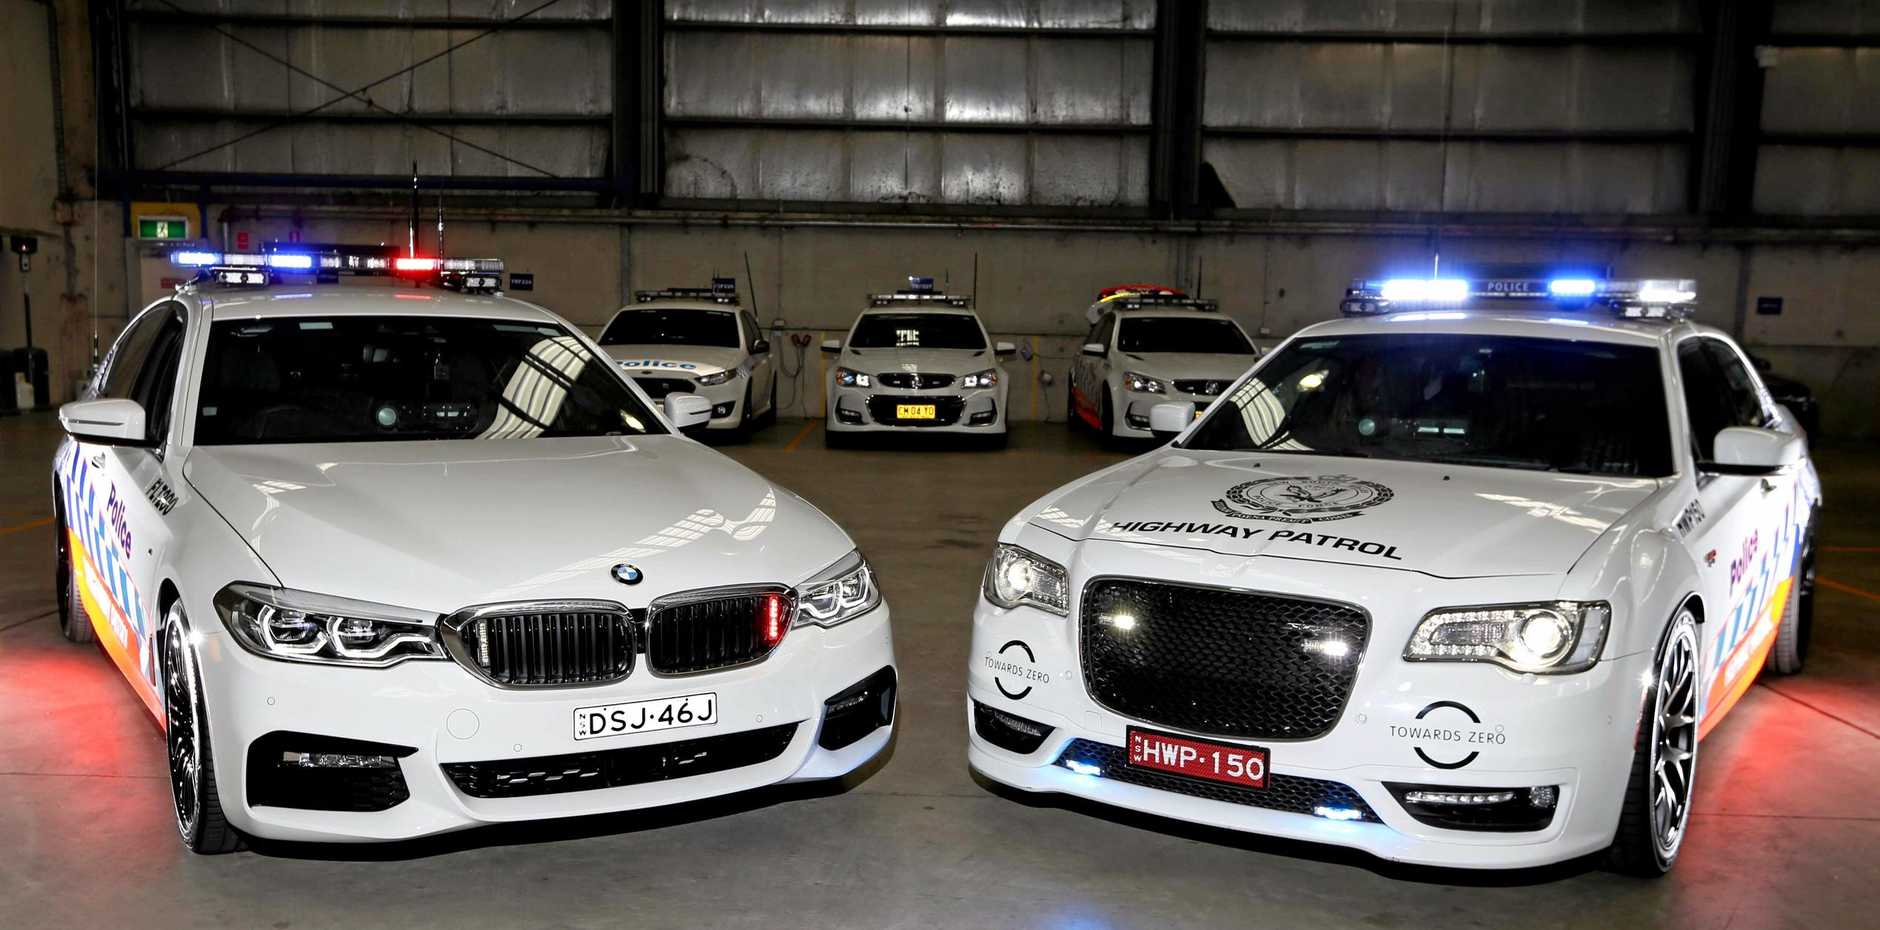 The new NSW Police Highway Patrol Cars that will be hitting the roads soon